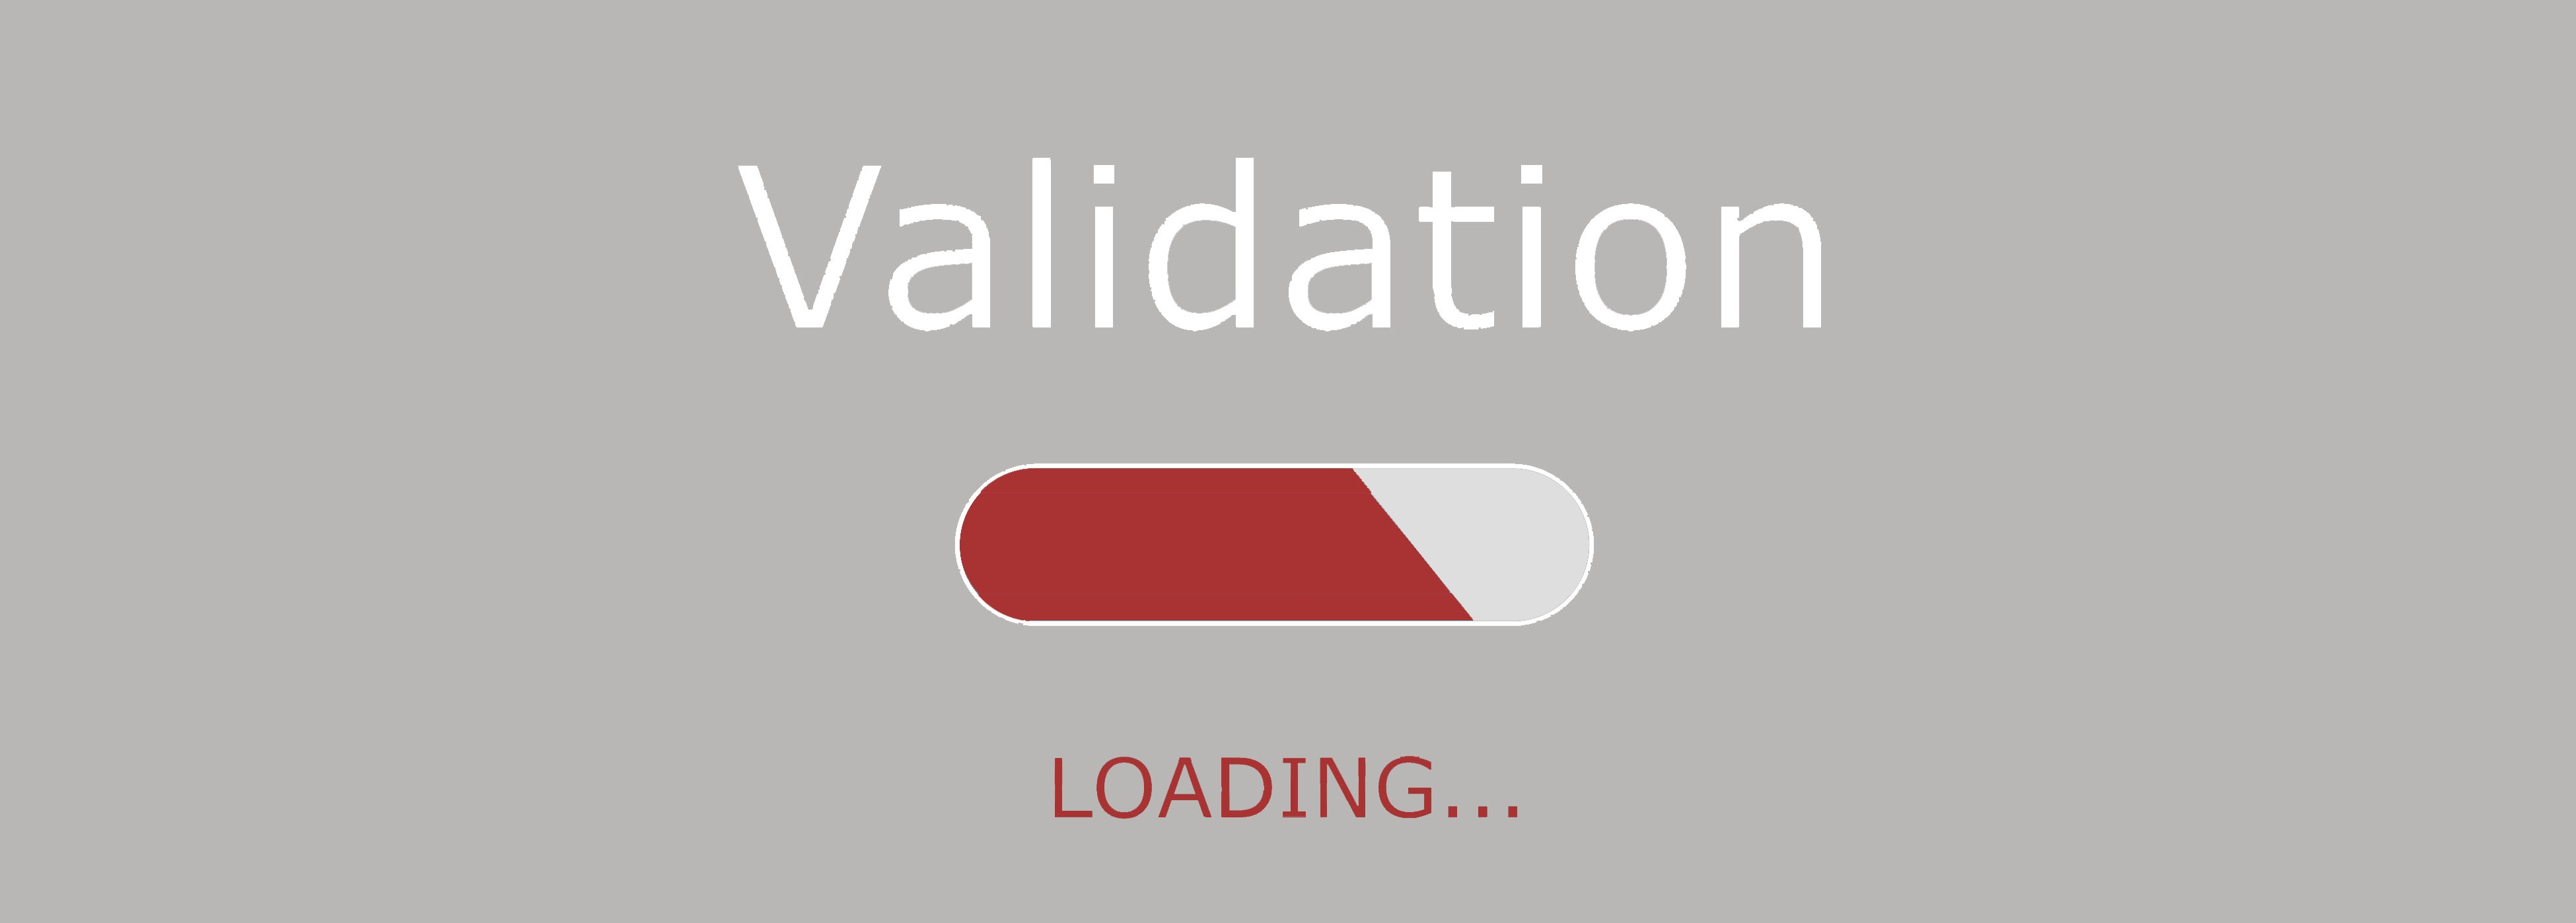 blog-validation2.jpg